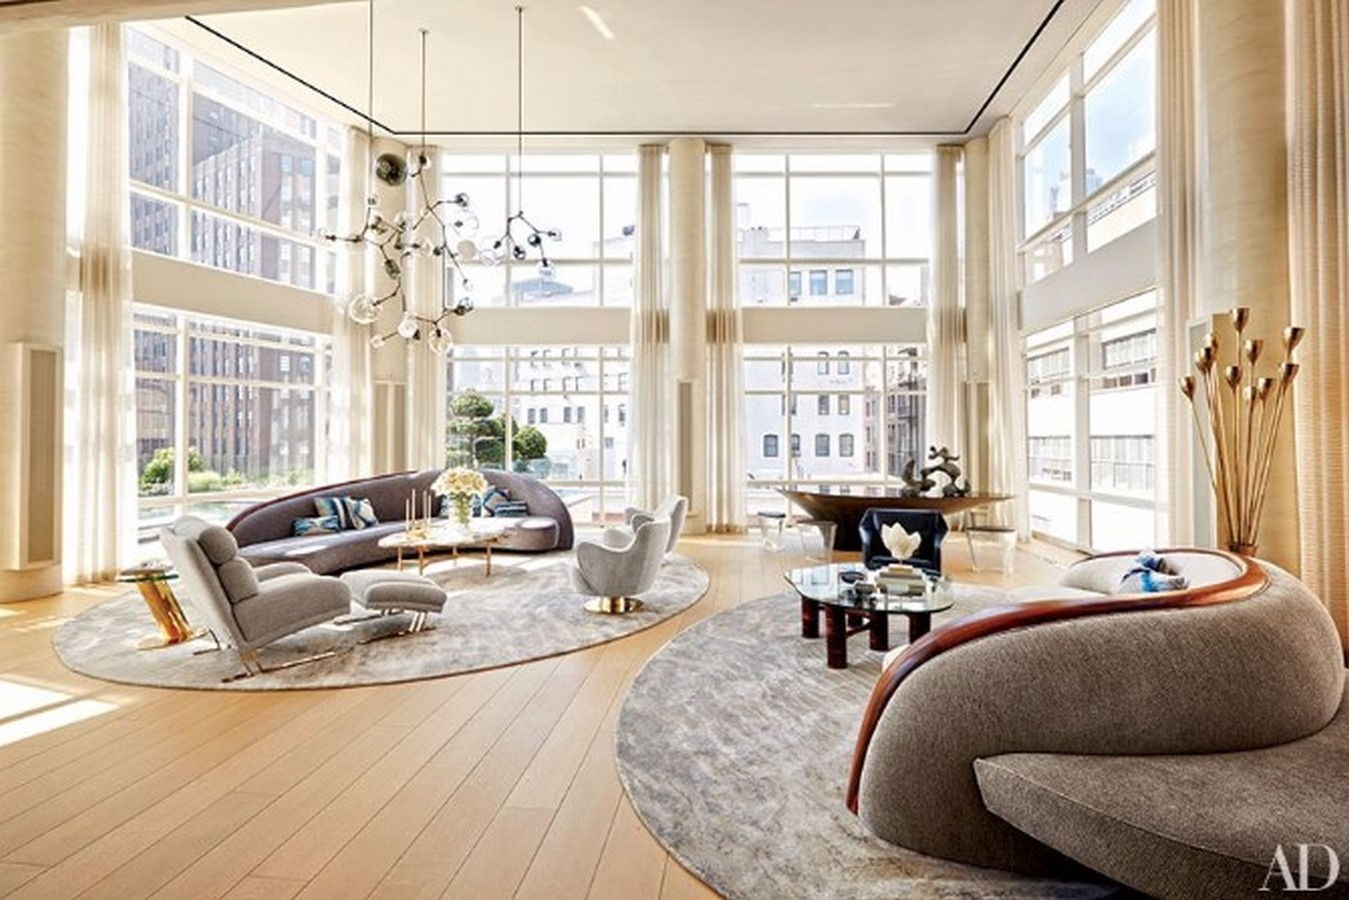 How to enhance Soft Furnishing Aesthetics in your house? - Sheet7